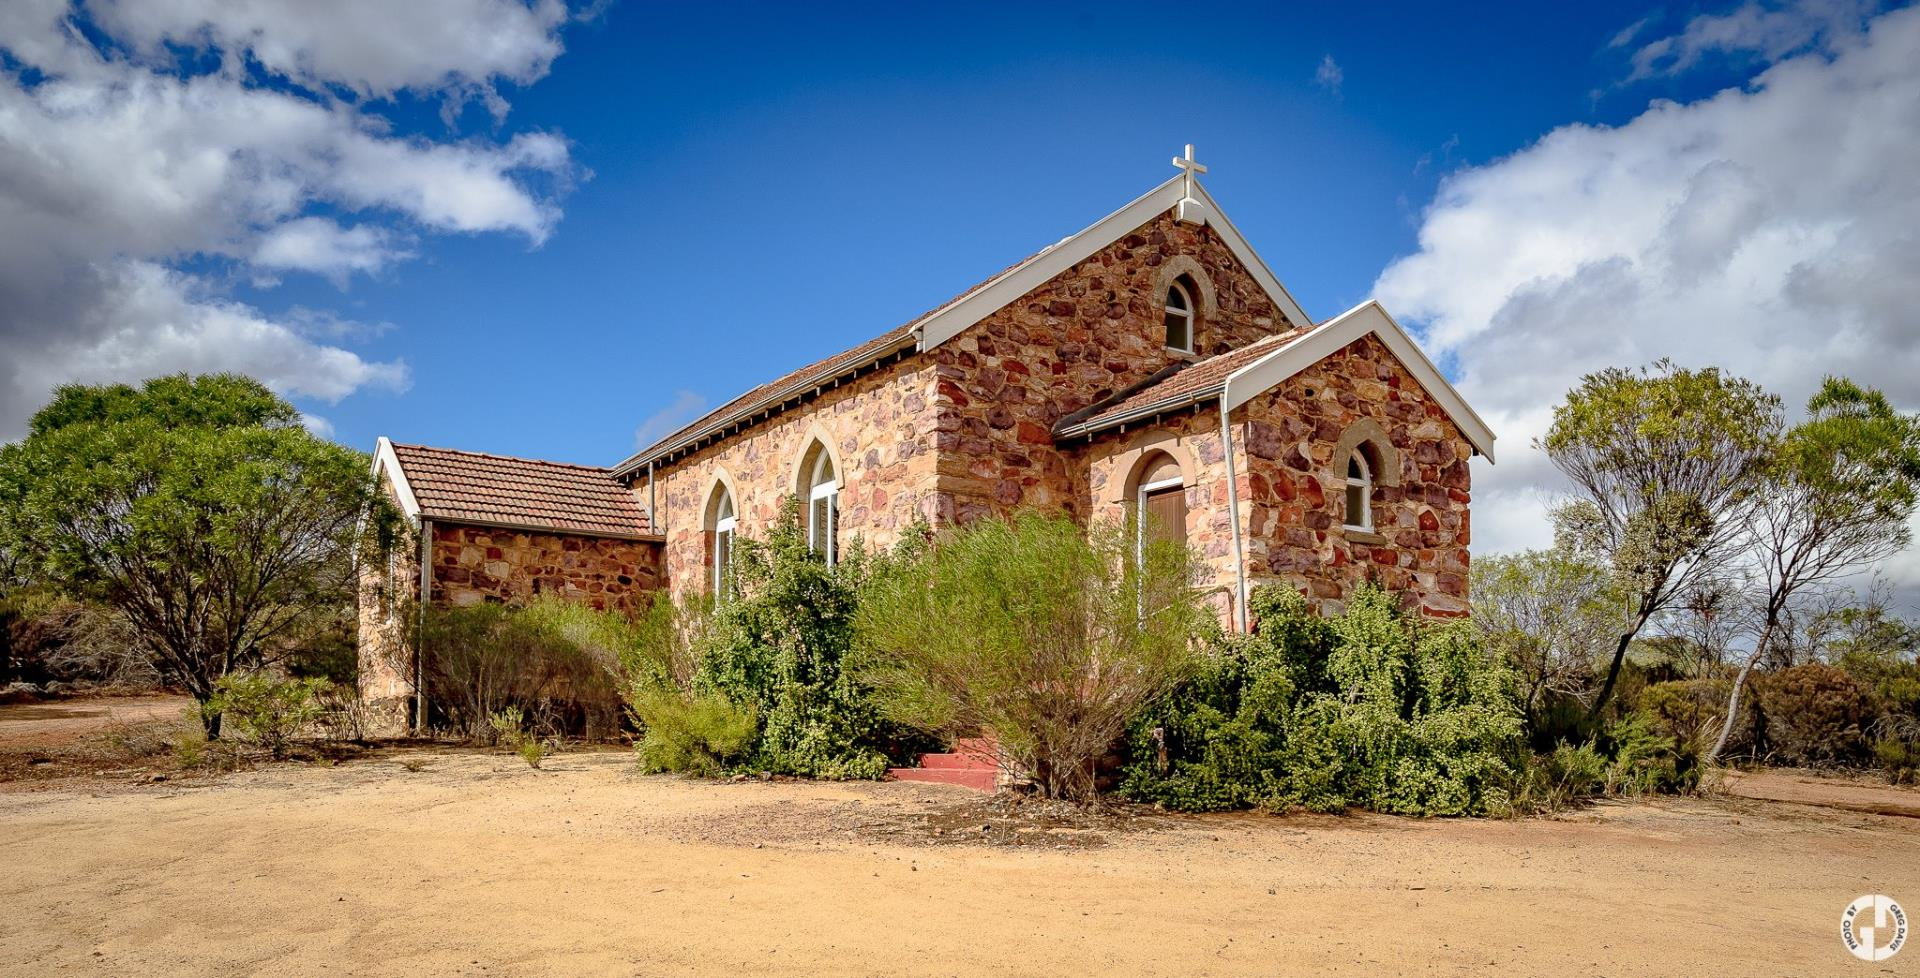 Nanson Catholic Church